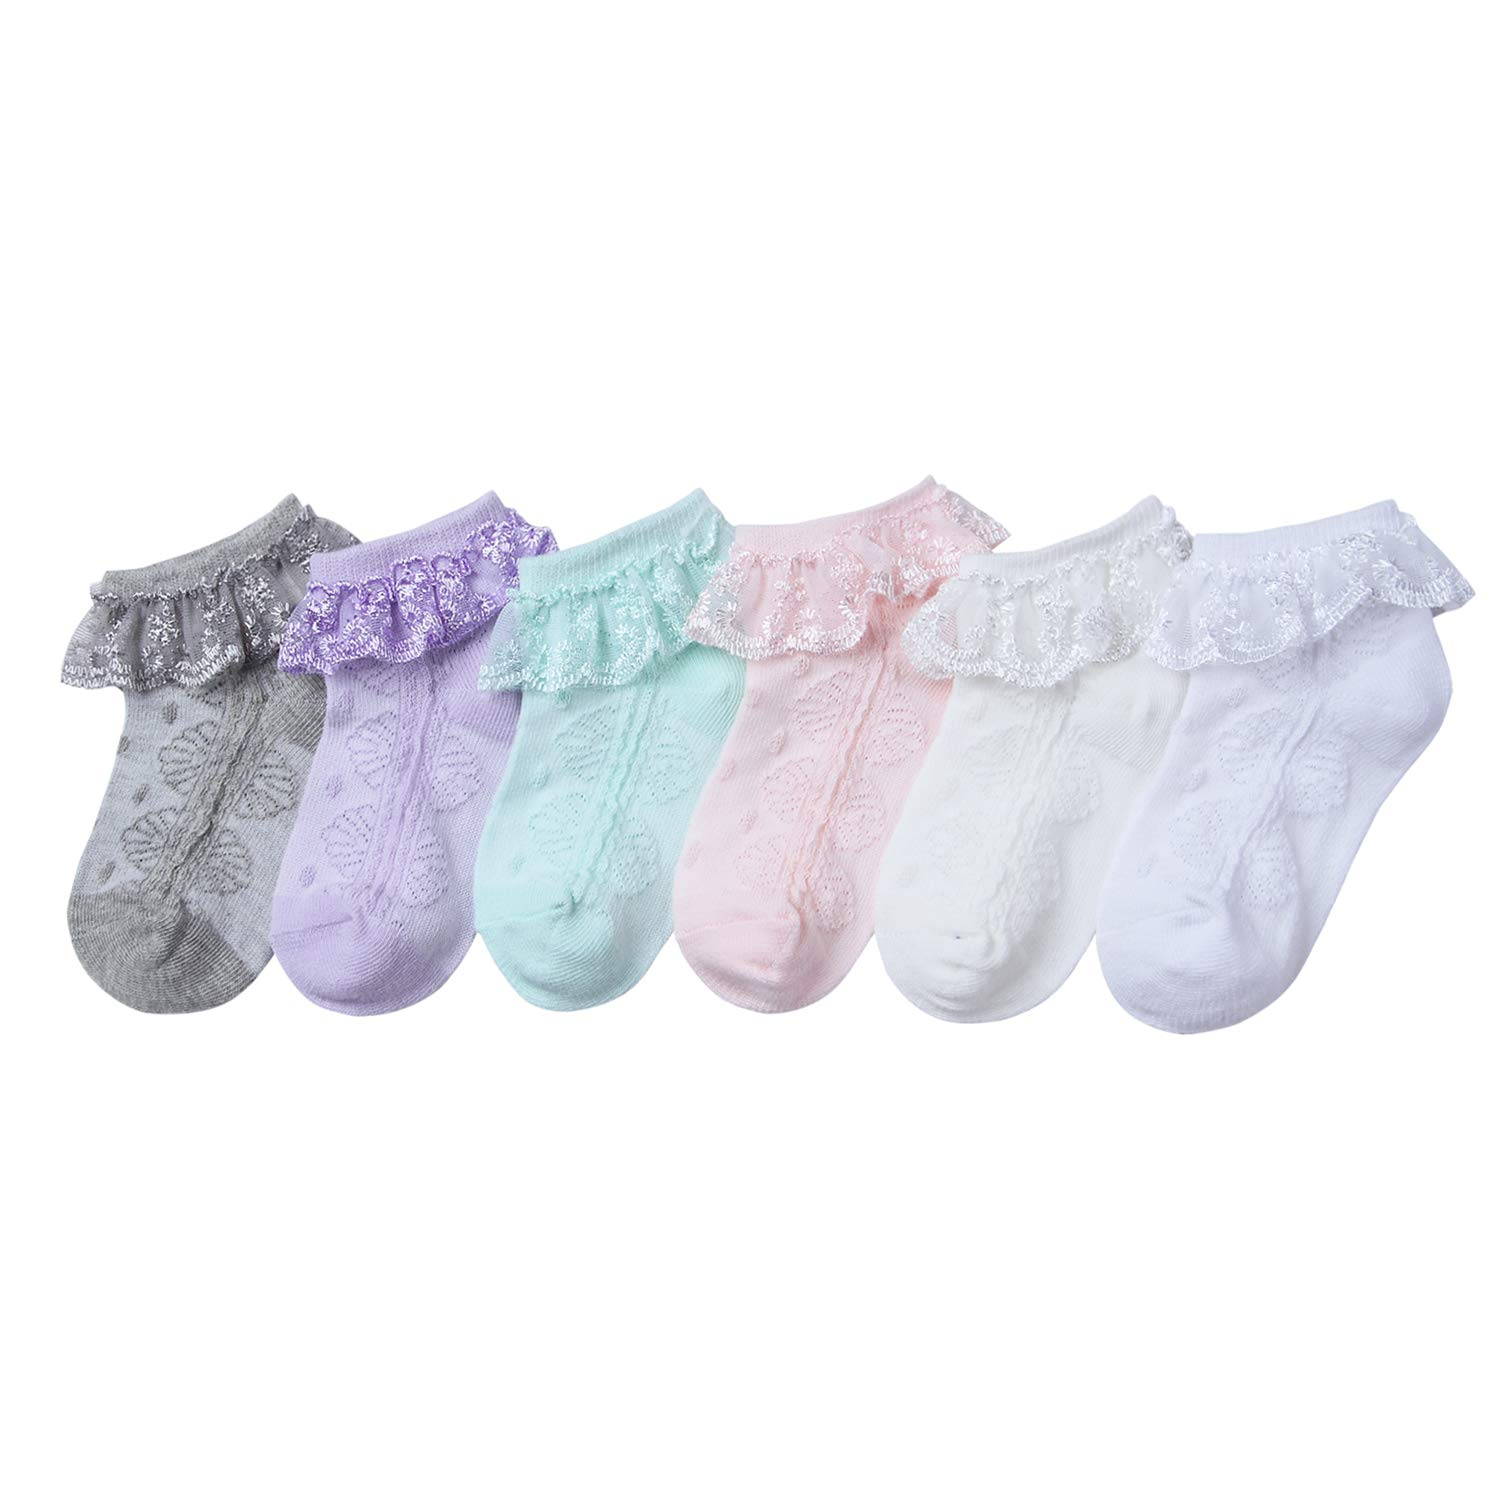 Adorel Baby Girls' Lace Ankle Socks Mesh Pack of 6